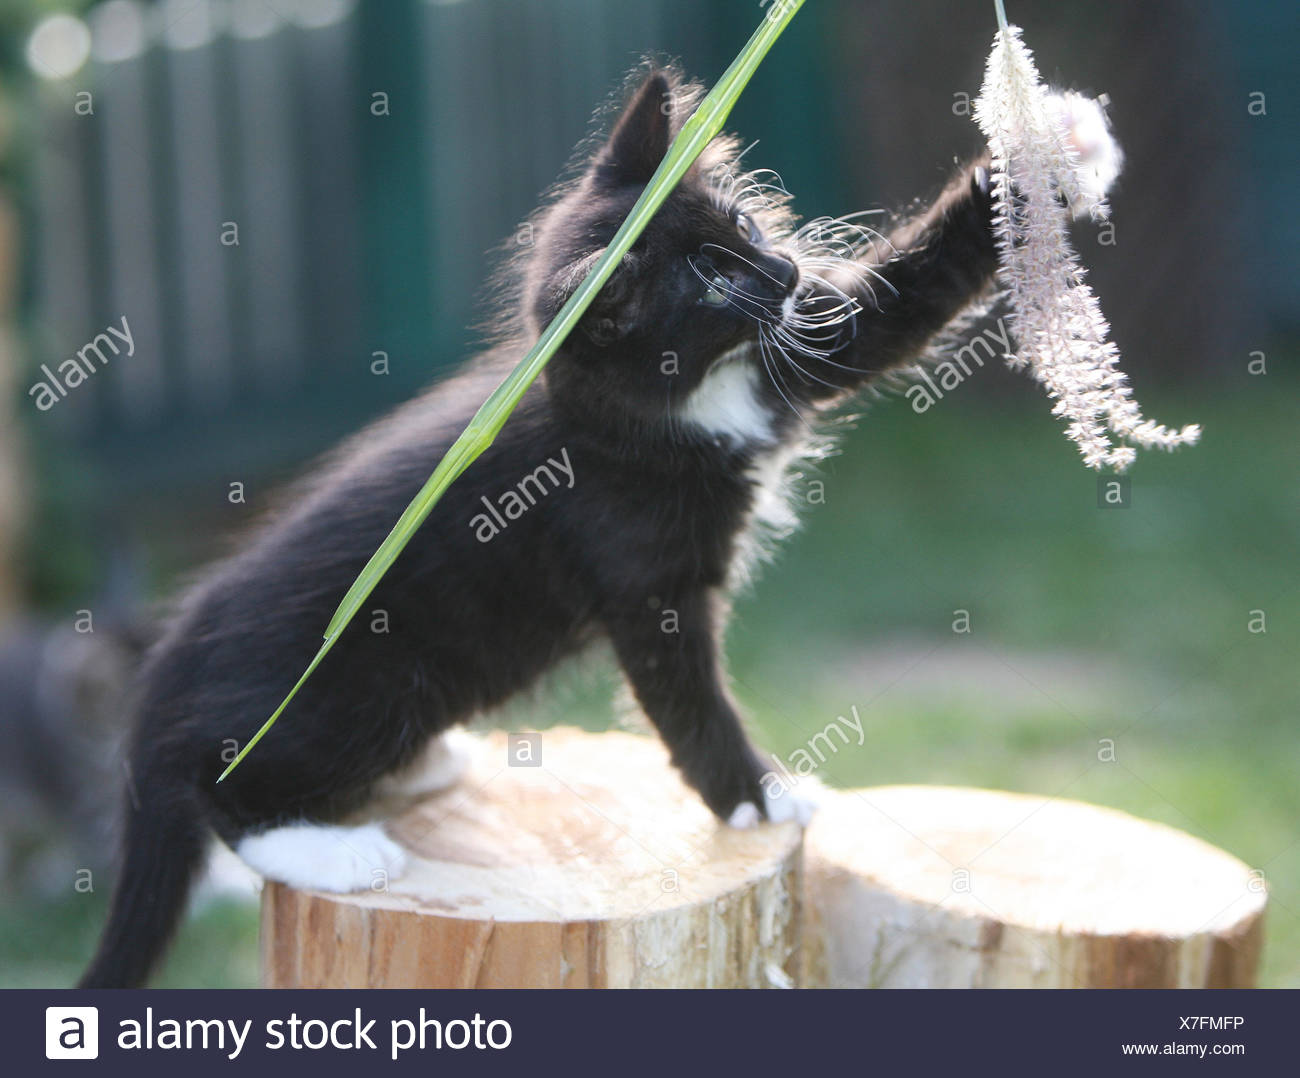 Young Kitten - Stock Image